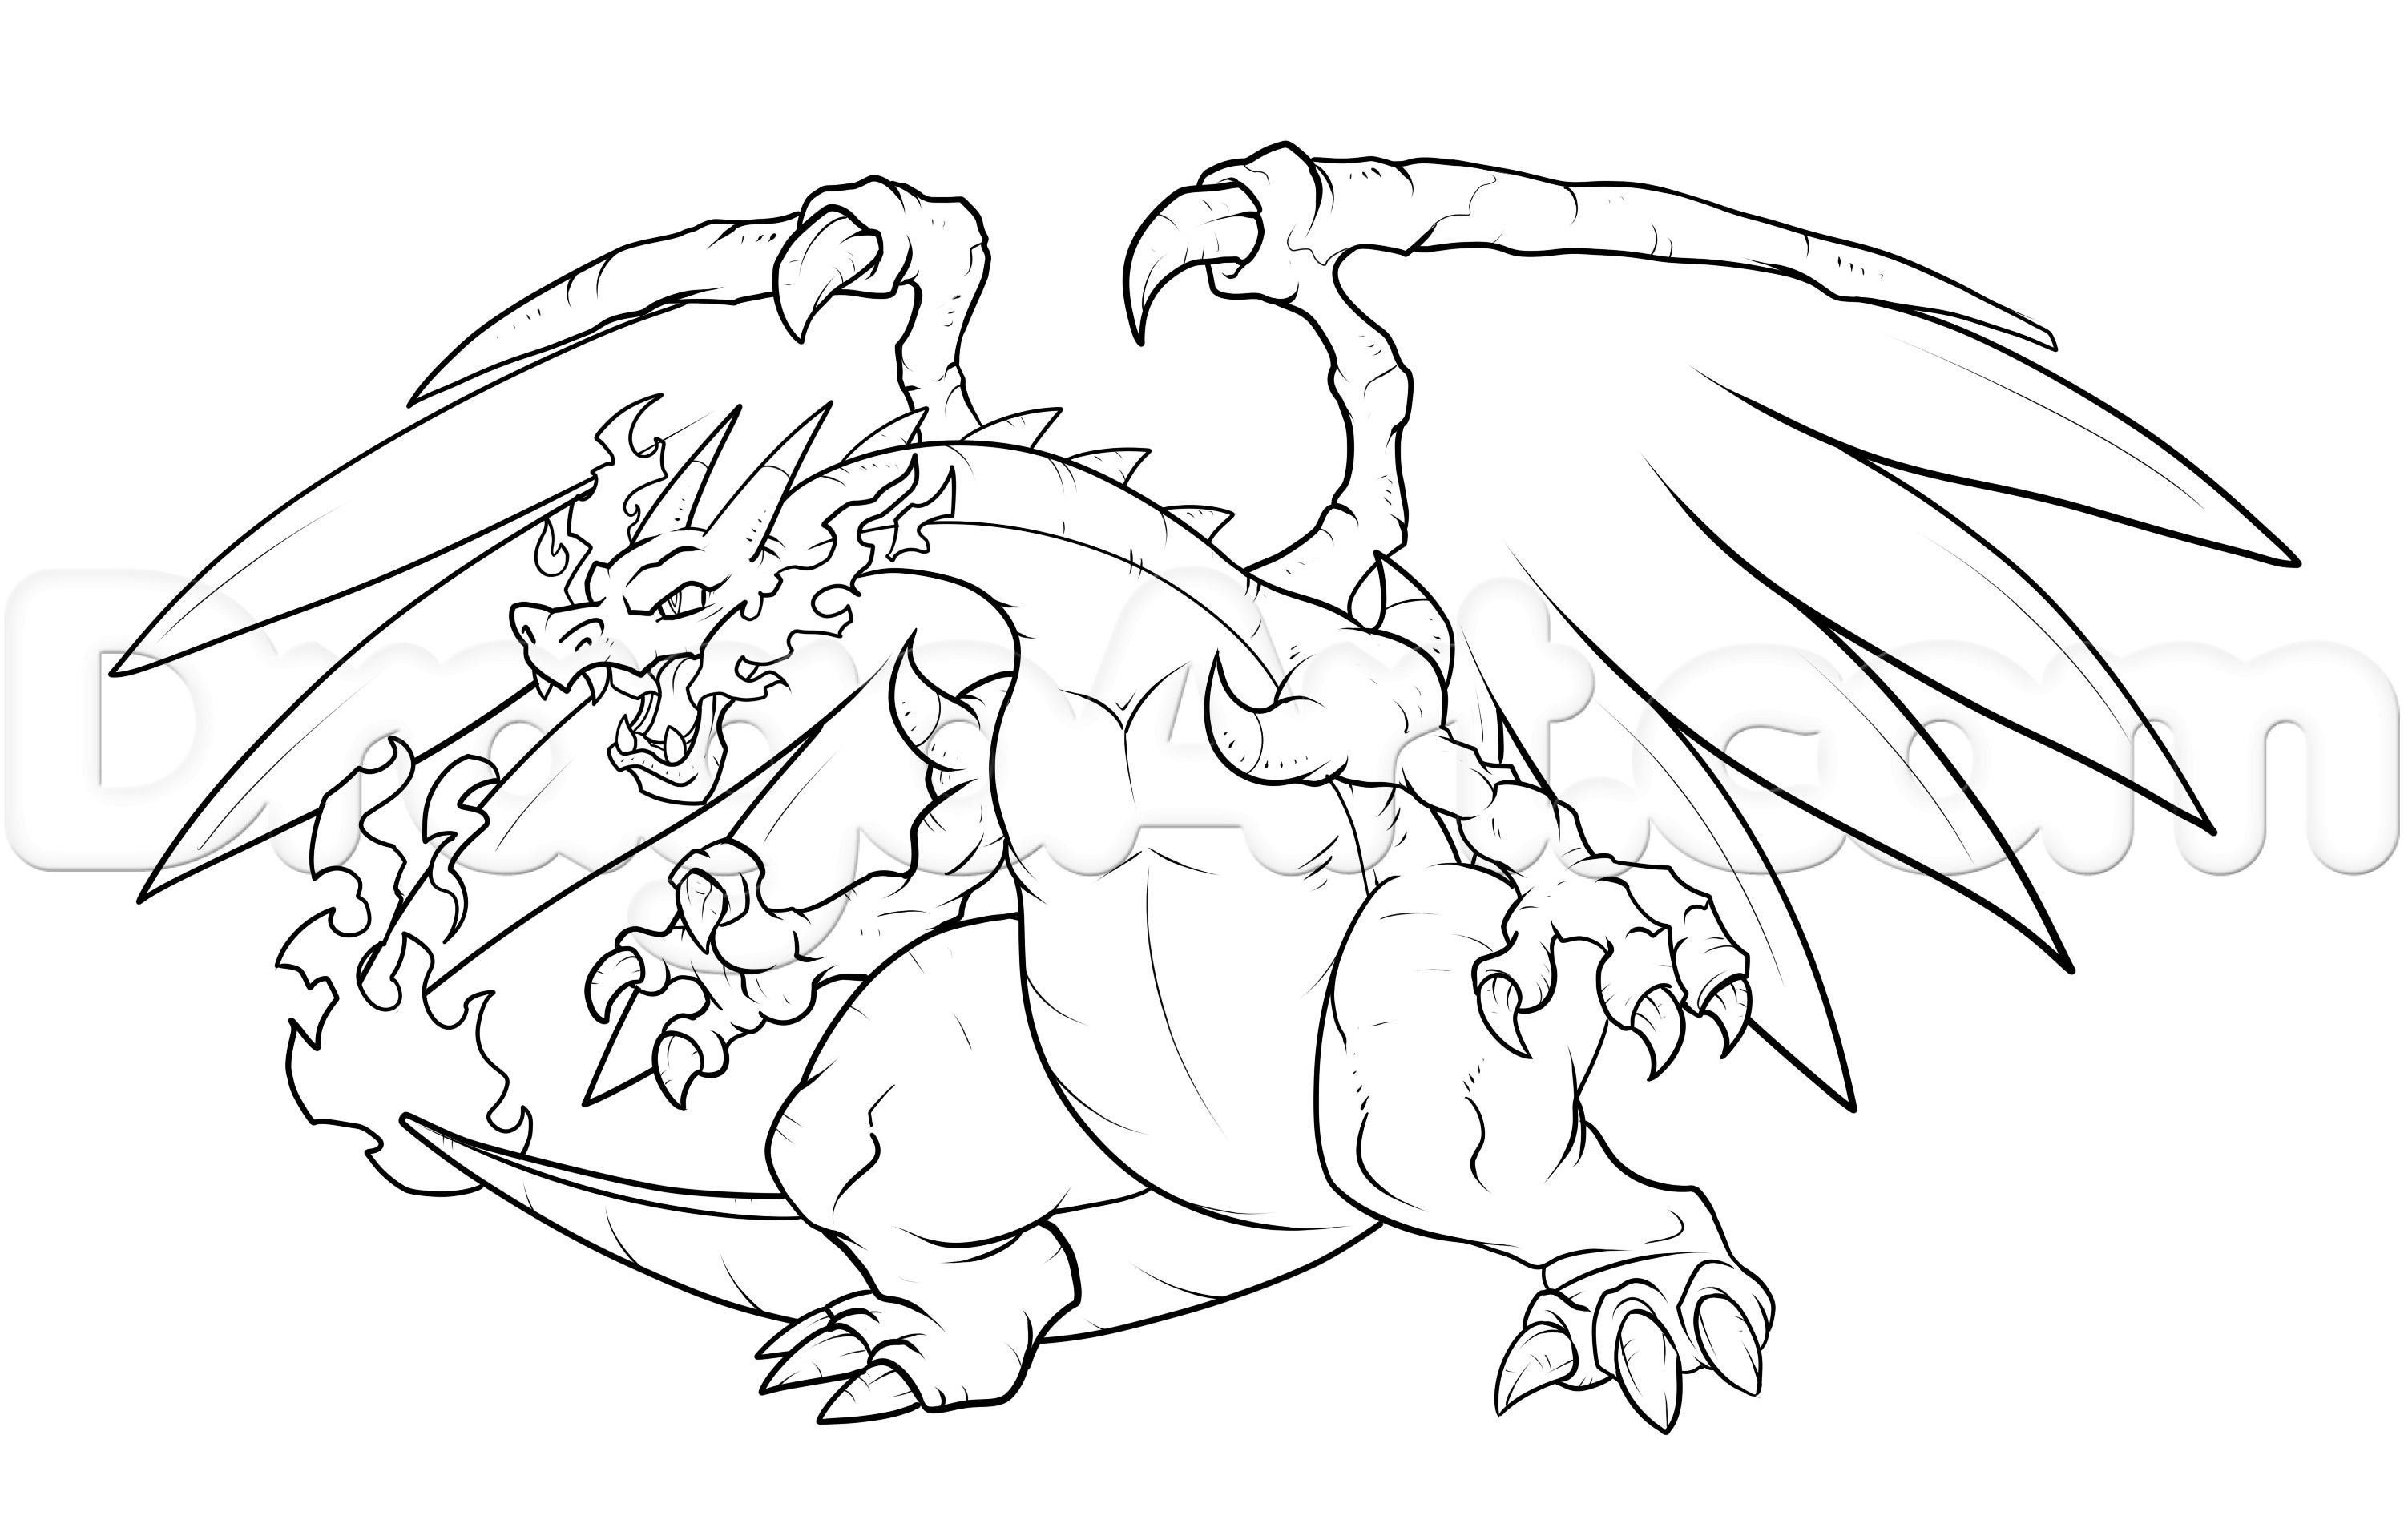 Pokemon Coloring Pages Mega Charizard X Coloring Pages Allow Kids To Accompany Their Favor Pokemon Coloring Pages Moon Coloring Pages Cartoon Coloring Pages